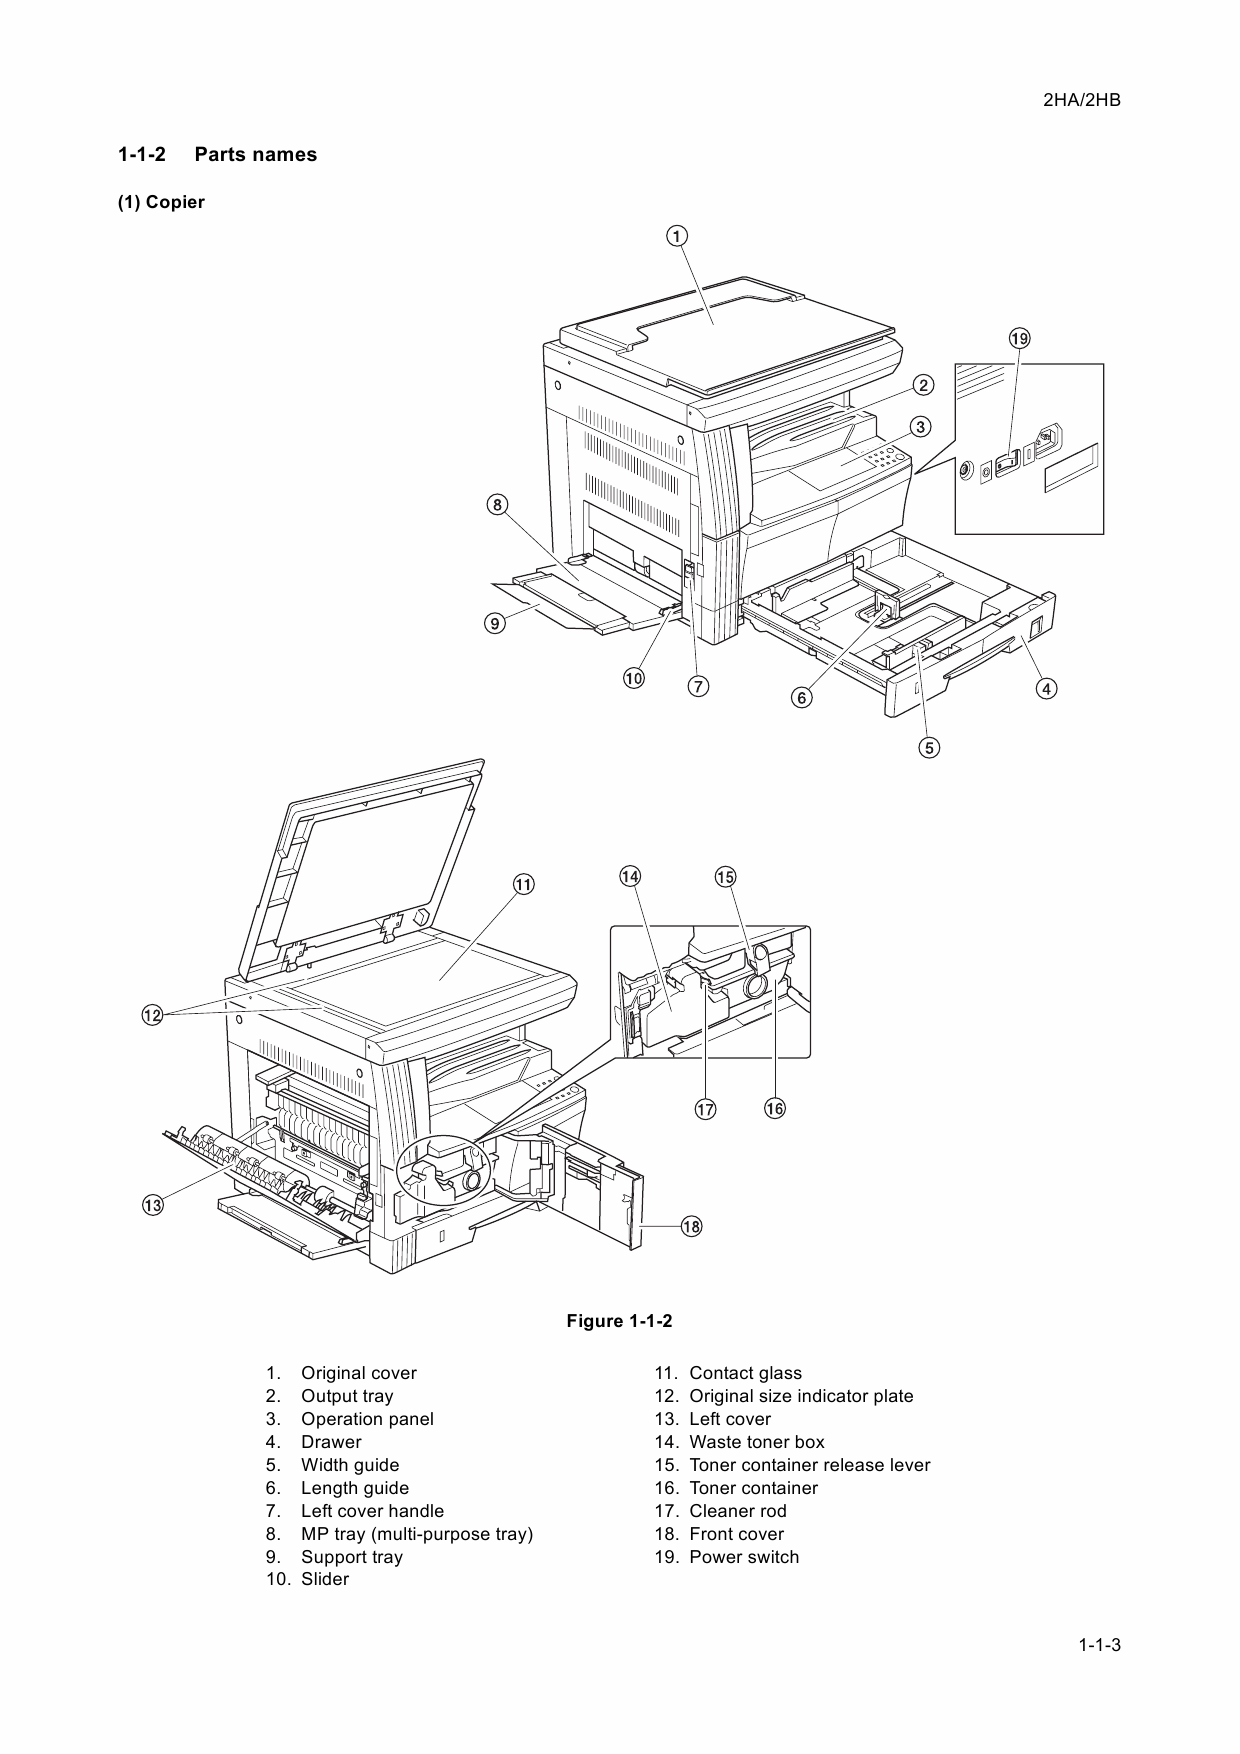 KYOCERA Copier KM-1635 2035 Service Manual